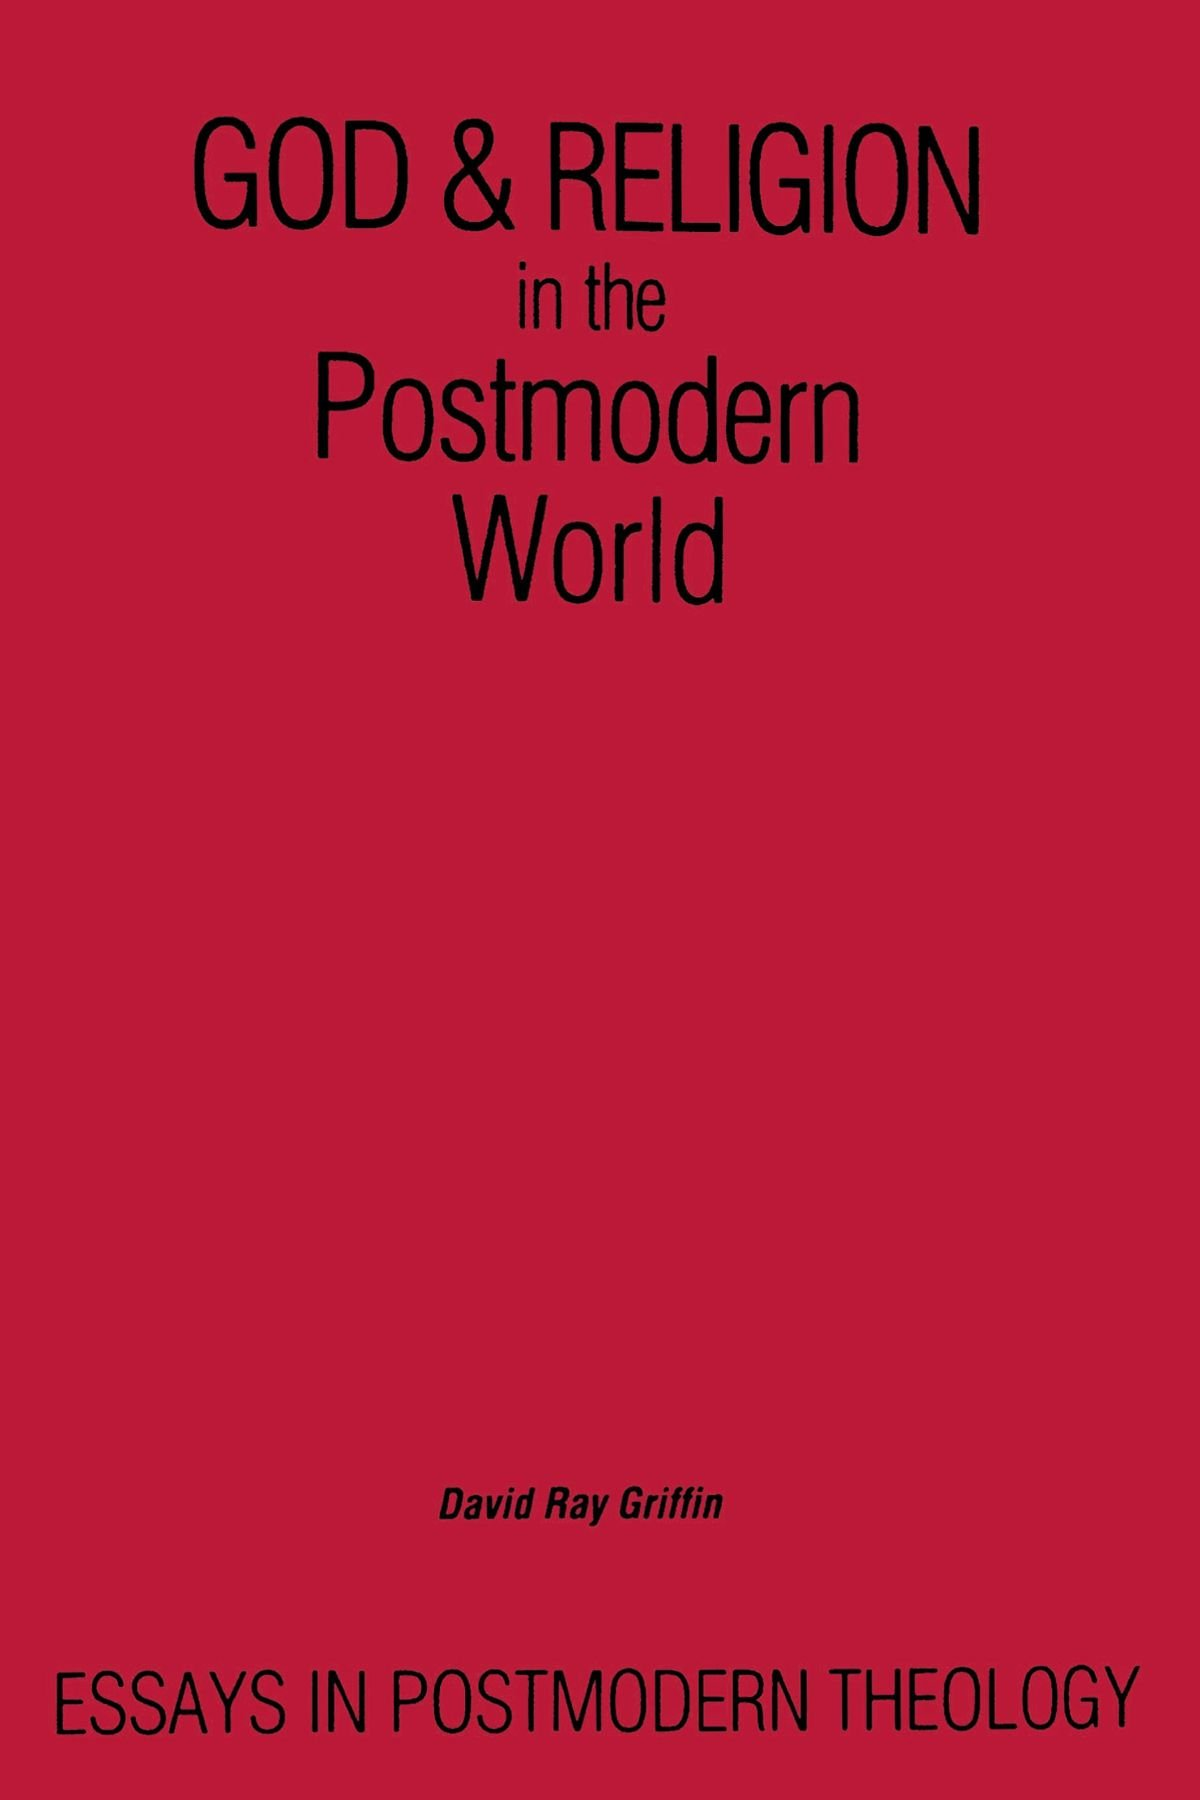 god and religion in the postmodern world essays in postmodern god and religion in the postmodern world essays in postmodern theology suny series in constructive postmodern thought david ray griffin 9780887069307